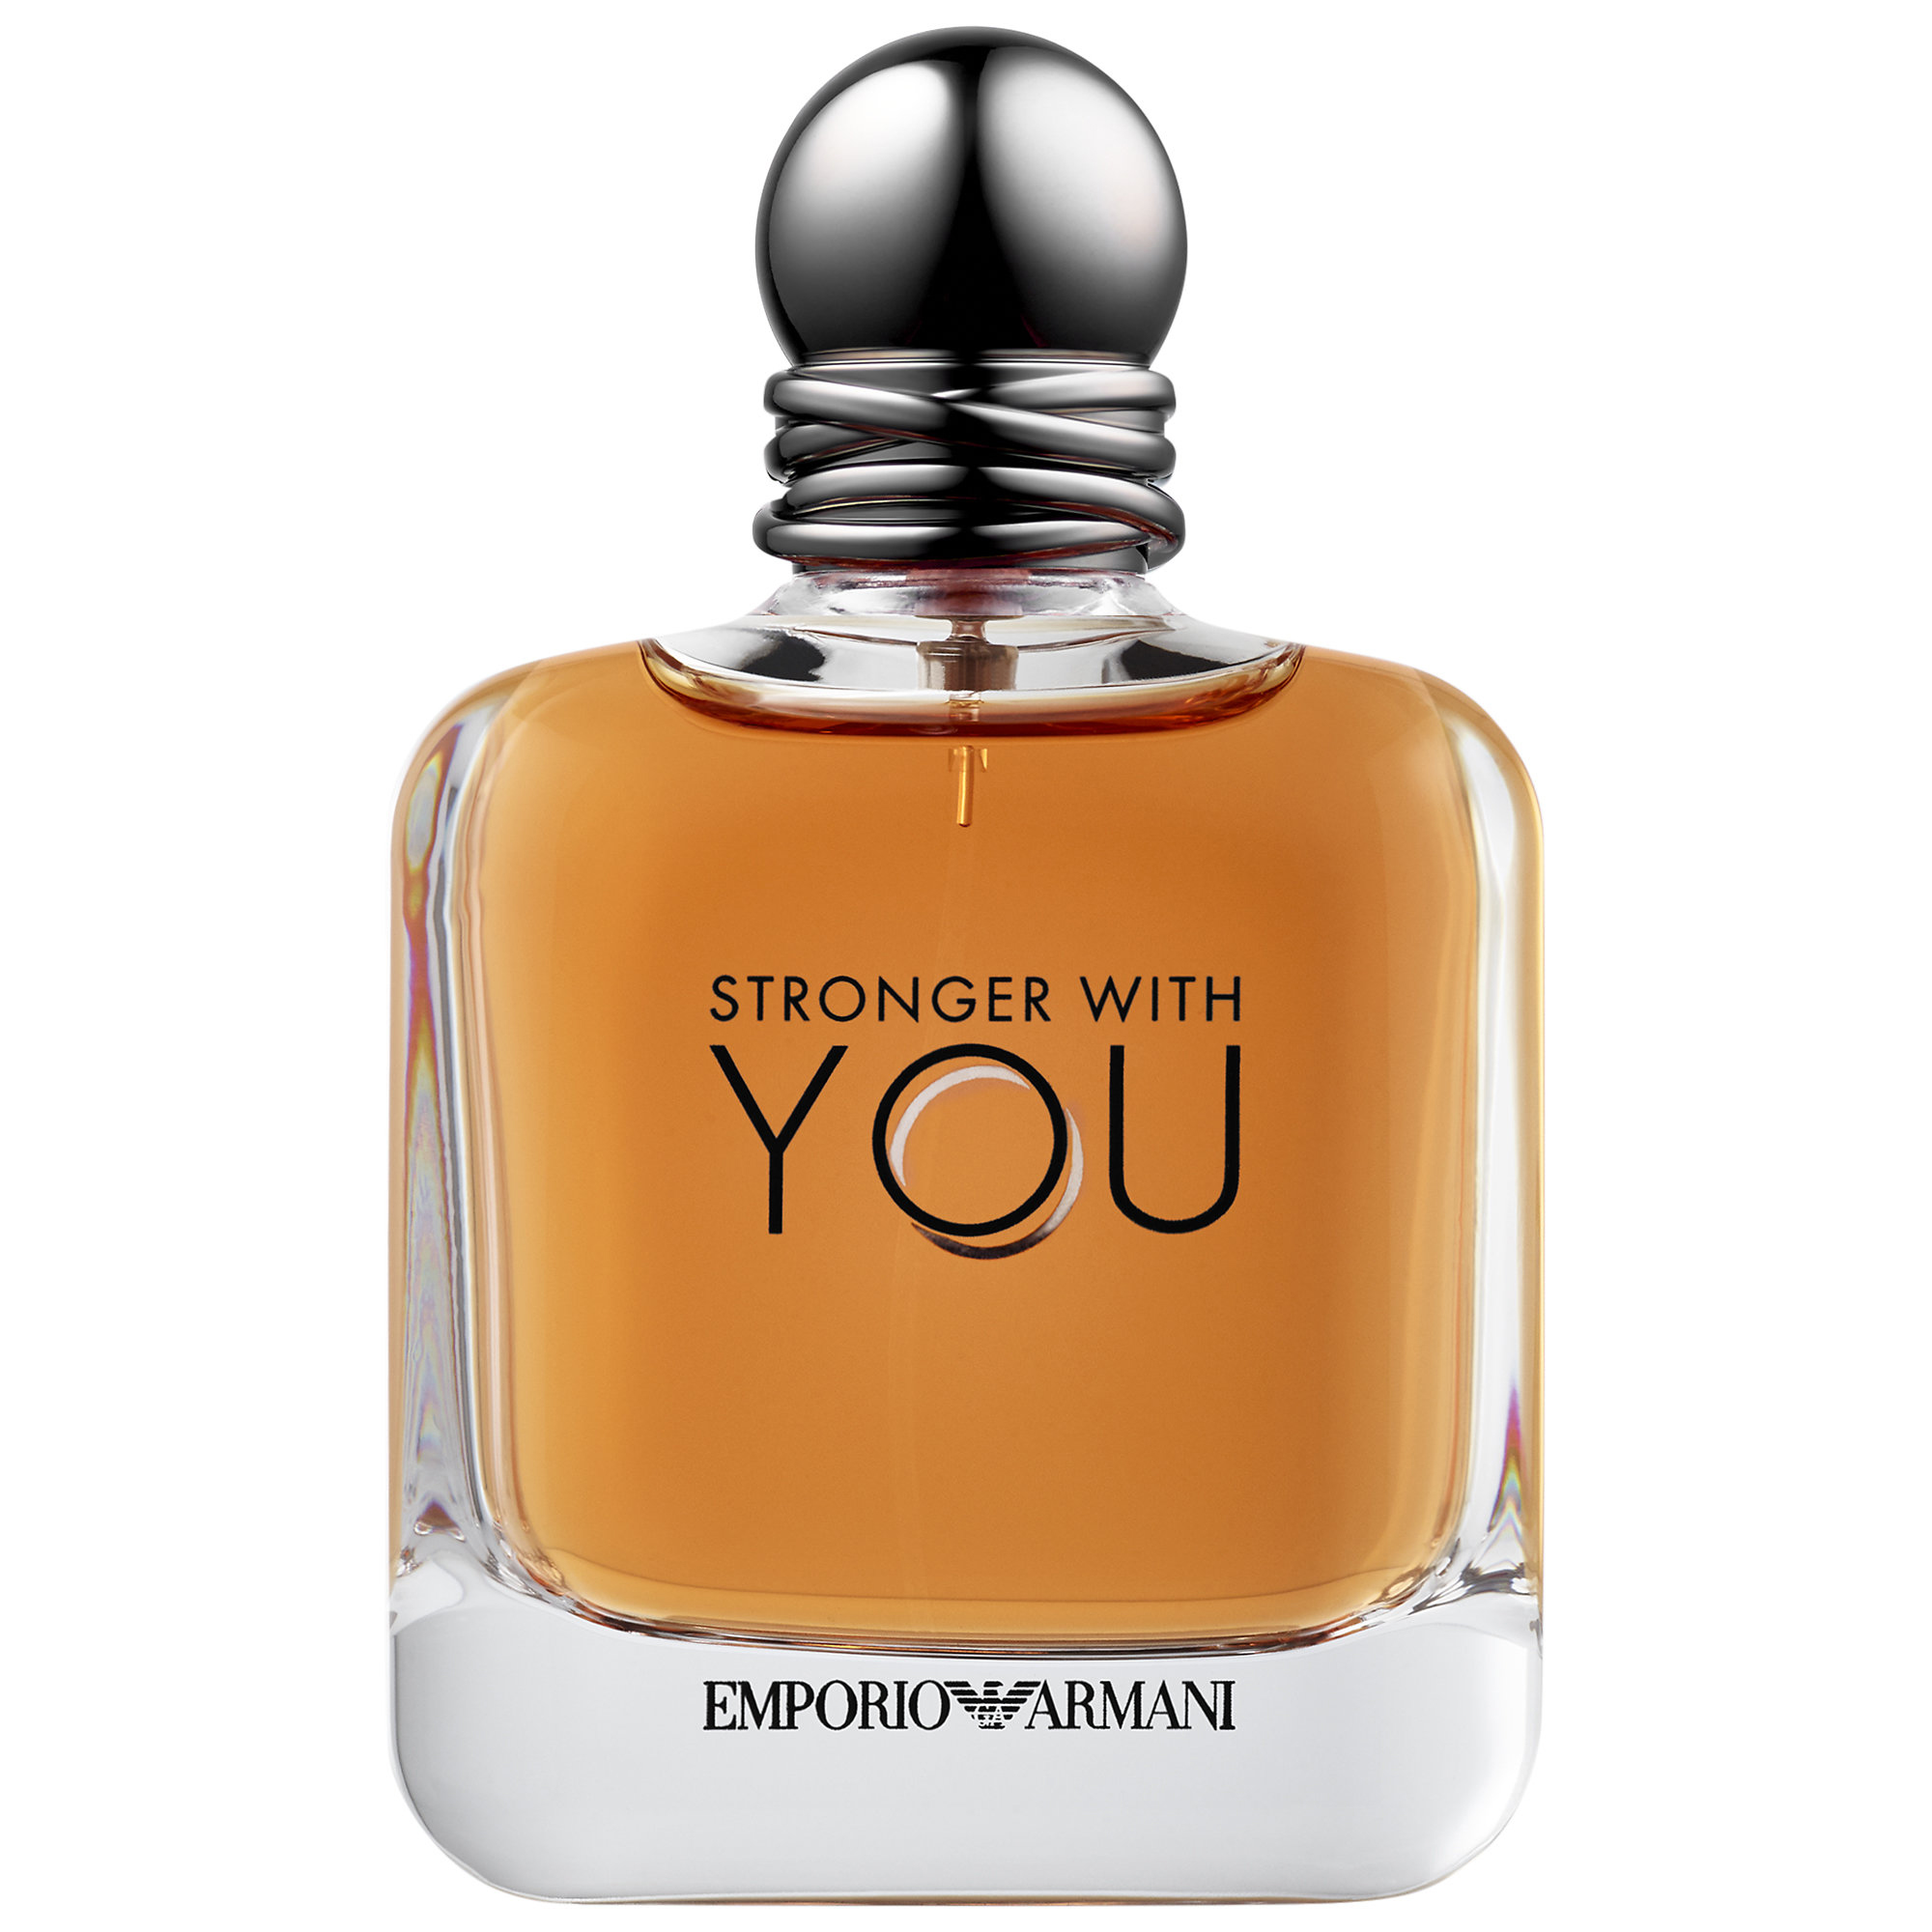 EMPORIO ARMANI Stronger With You ($115 - 100ml).